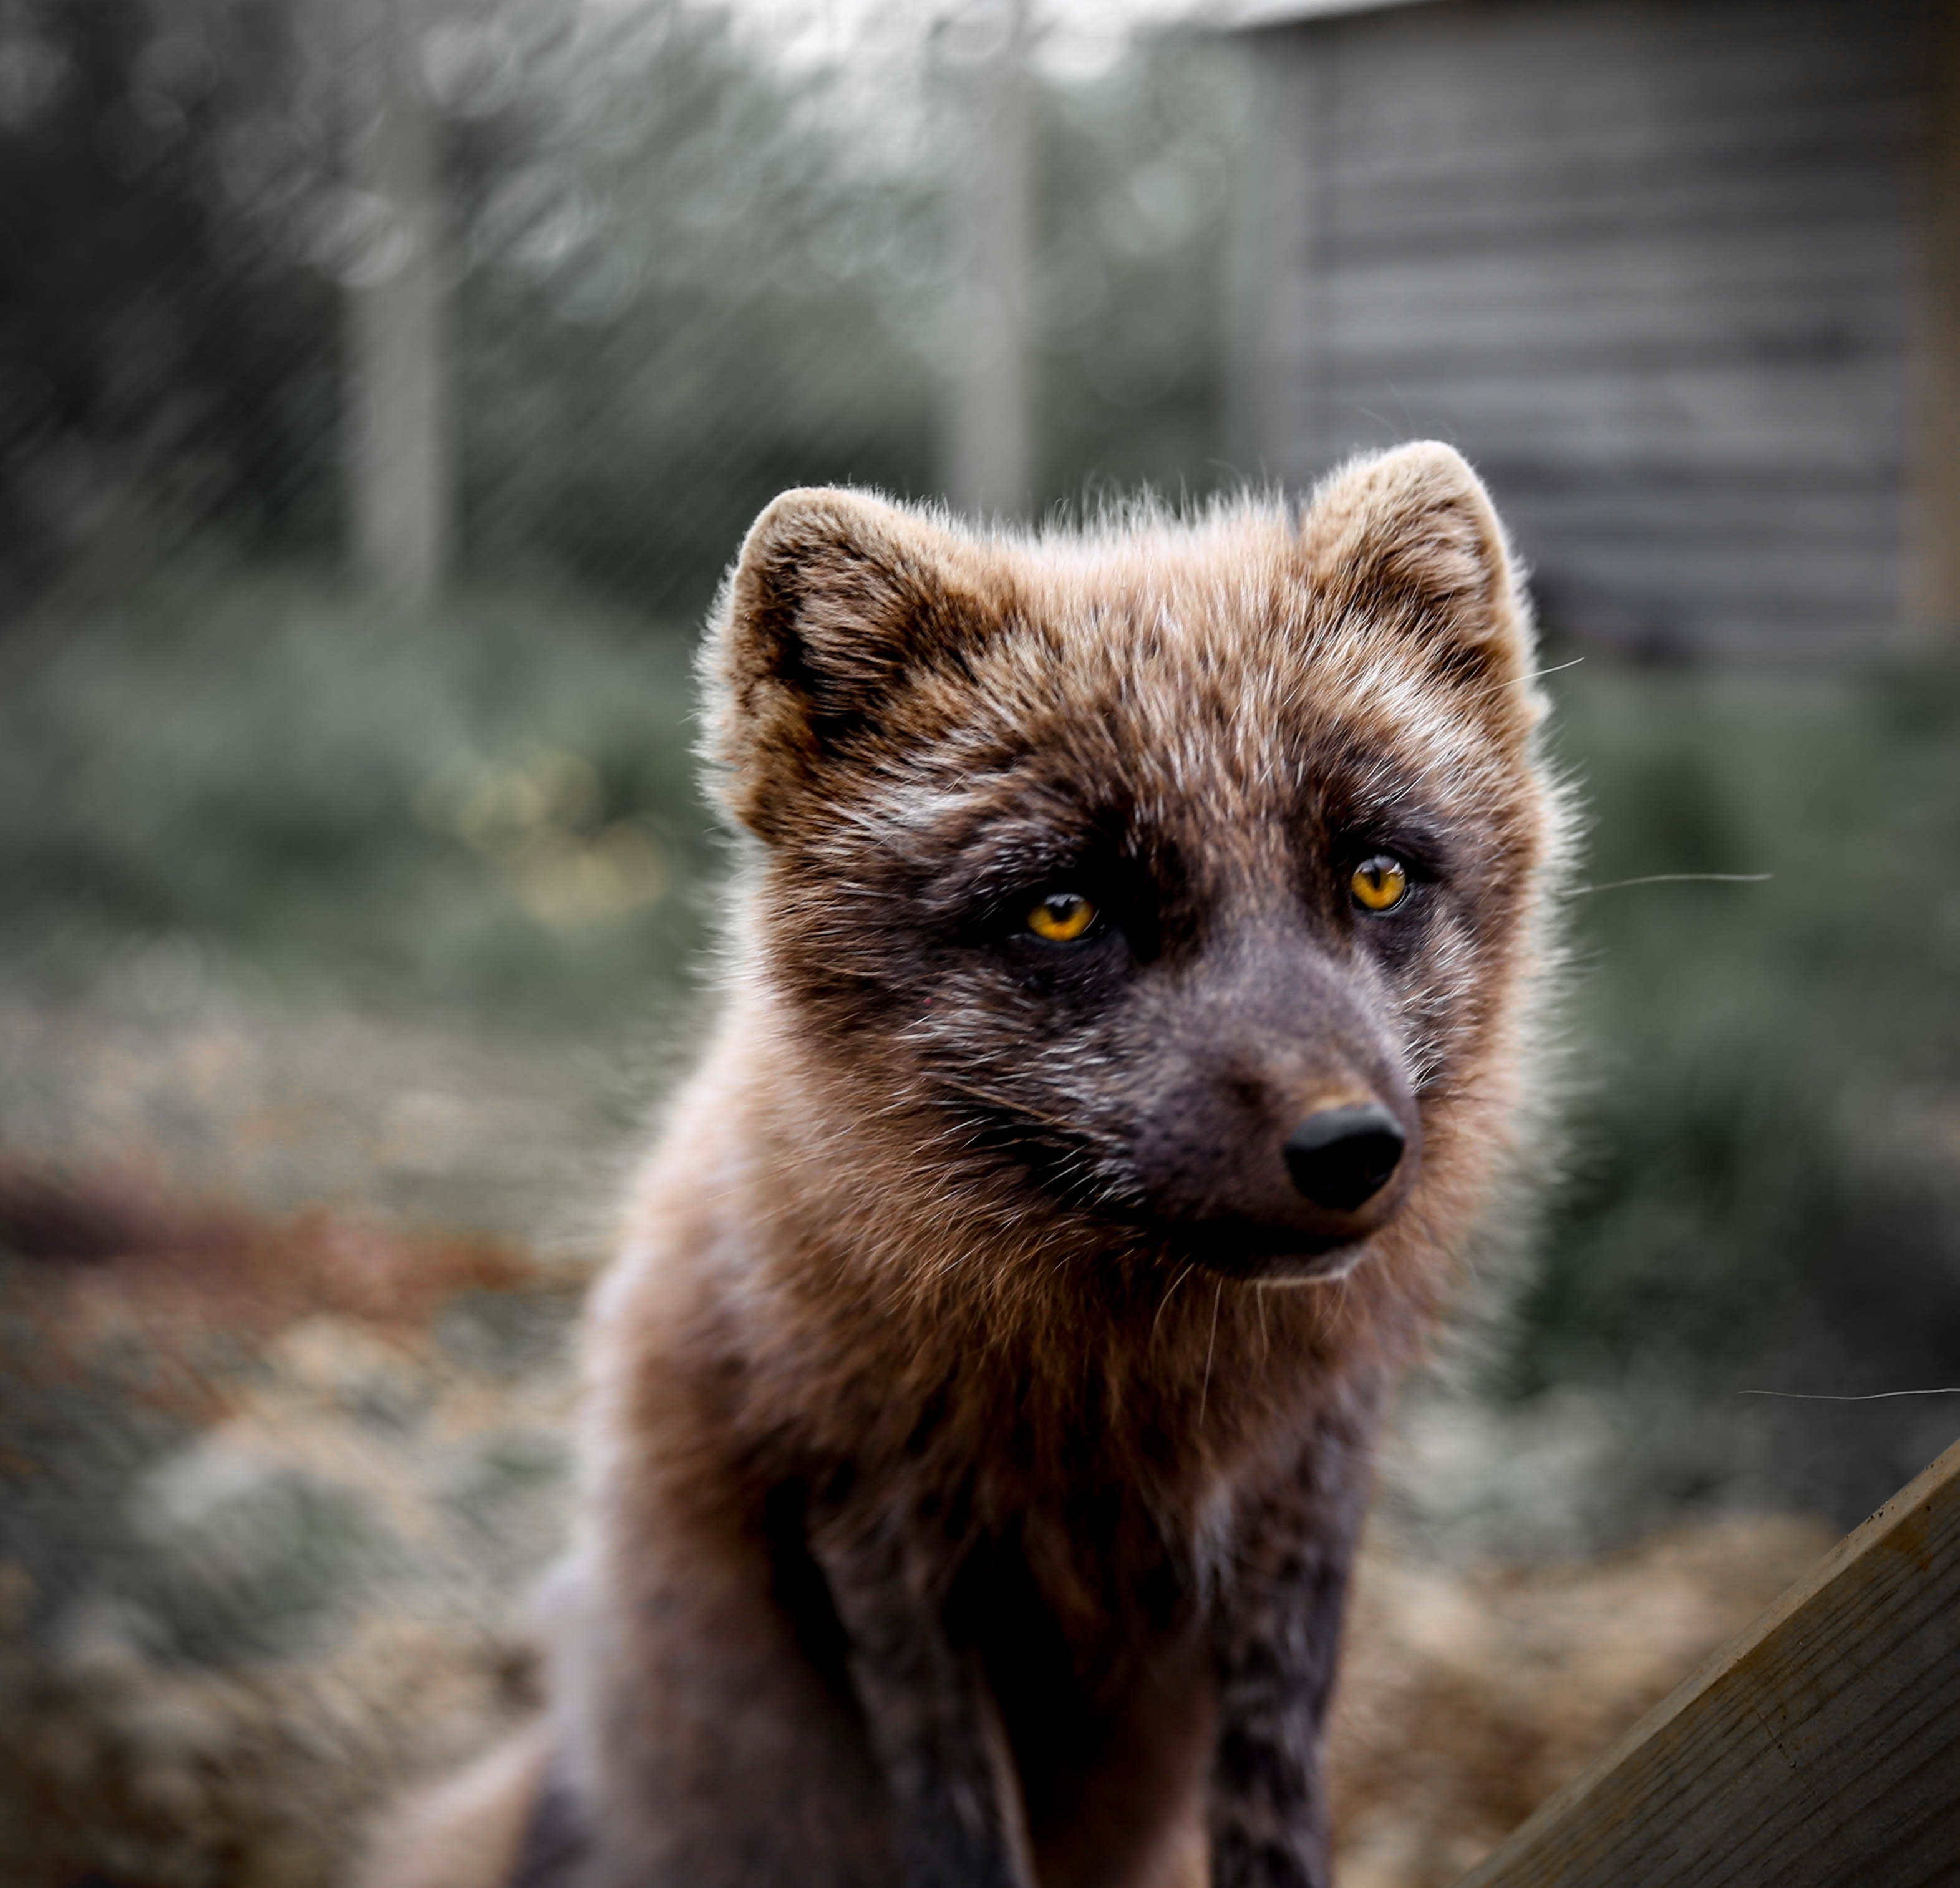 Macro of a brown fox with yellow eyes looking apologetic beside a gray background of a shed and lawn